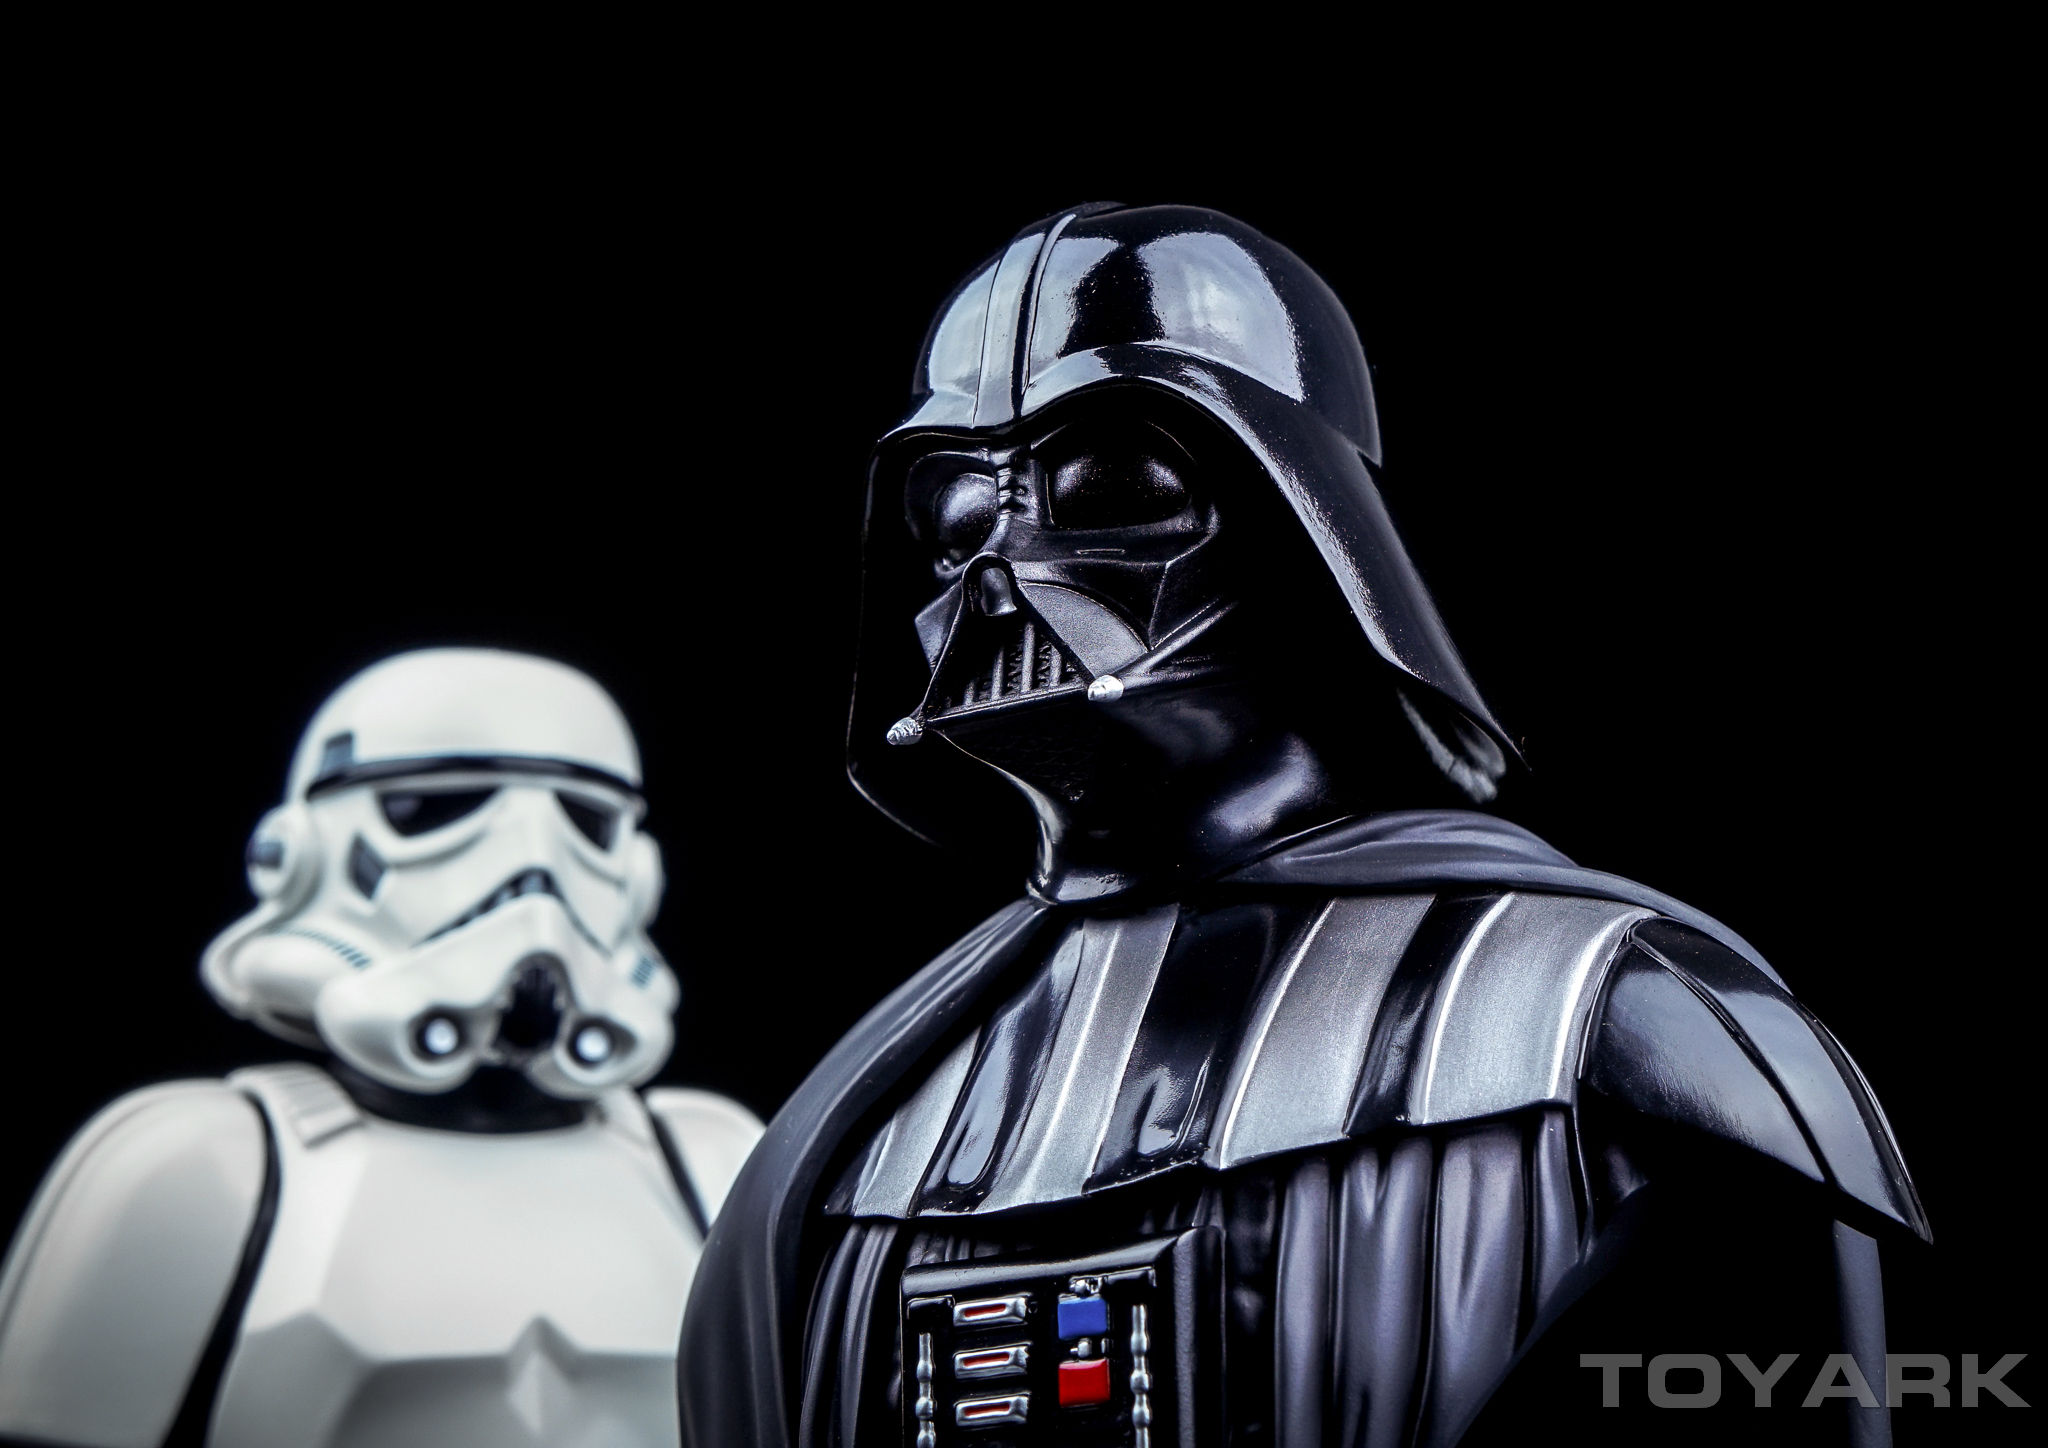 http://news.toyark.com/wp-content/uploads/sites/4/2016/04/Star-Wars-Stormtrooper-GS-Bust-030.jpg